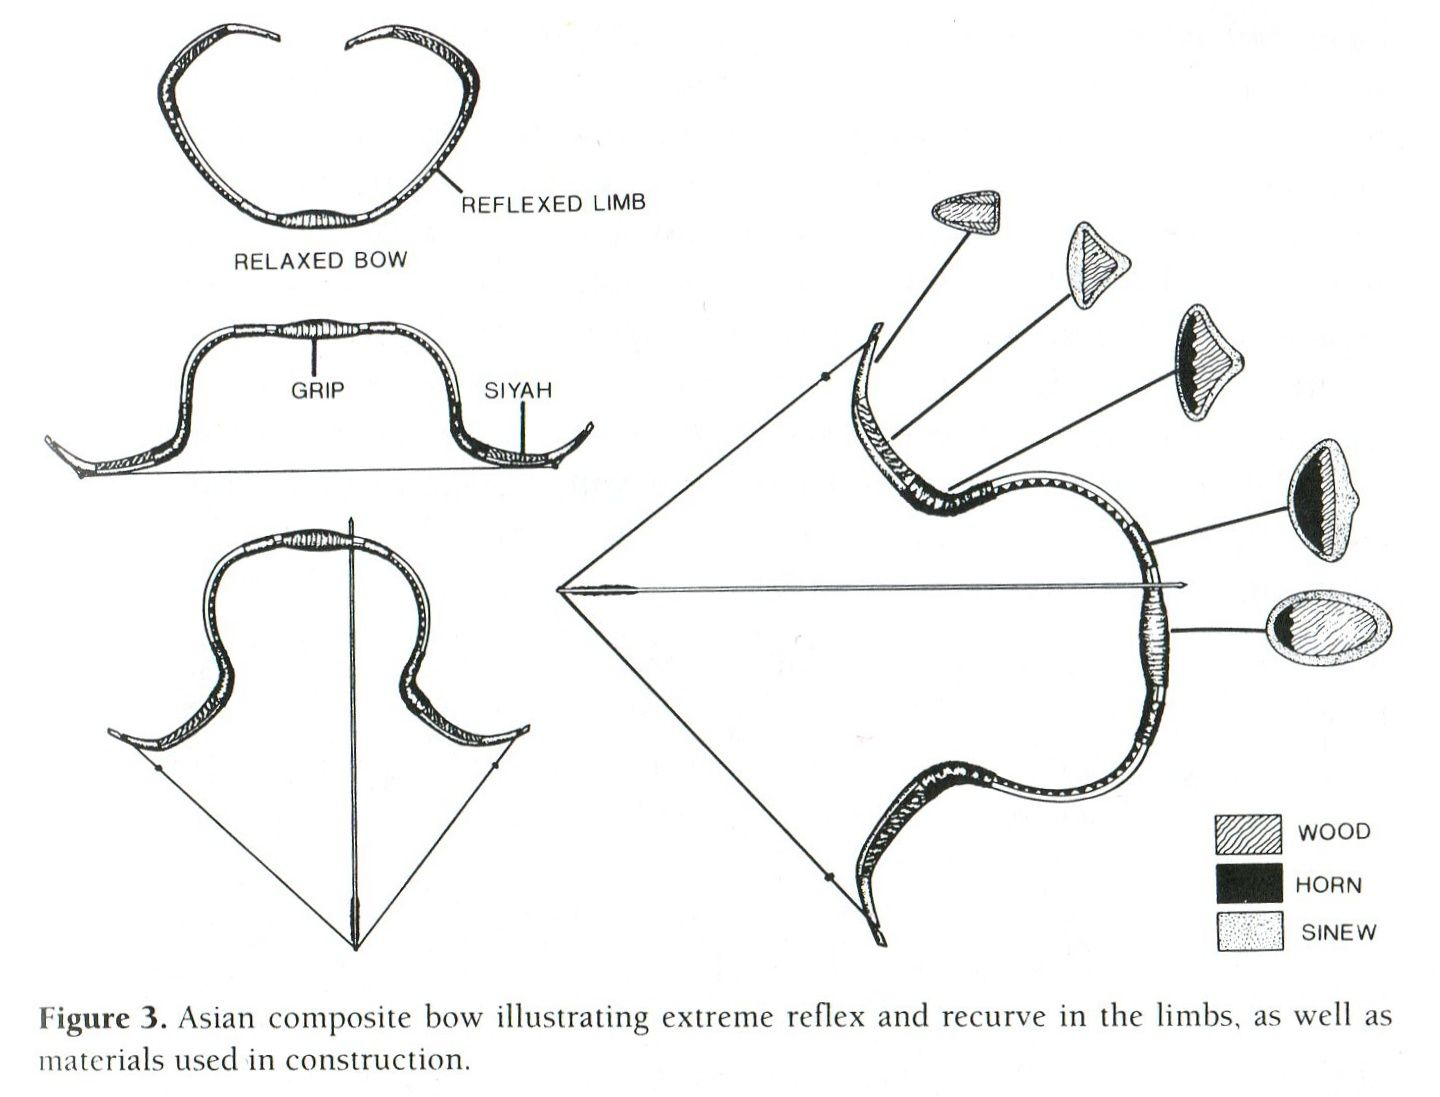 medium resolution of composite bows weapon of ancient nomadic equestrian cultures rh legioilynx com horse diagram poster archery bow diagram